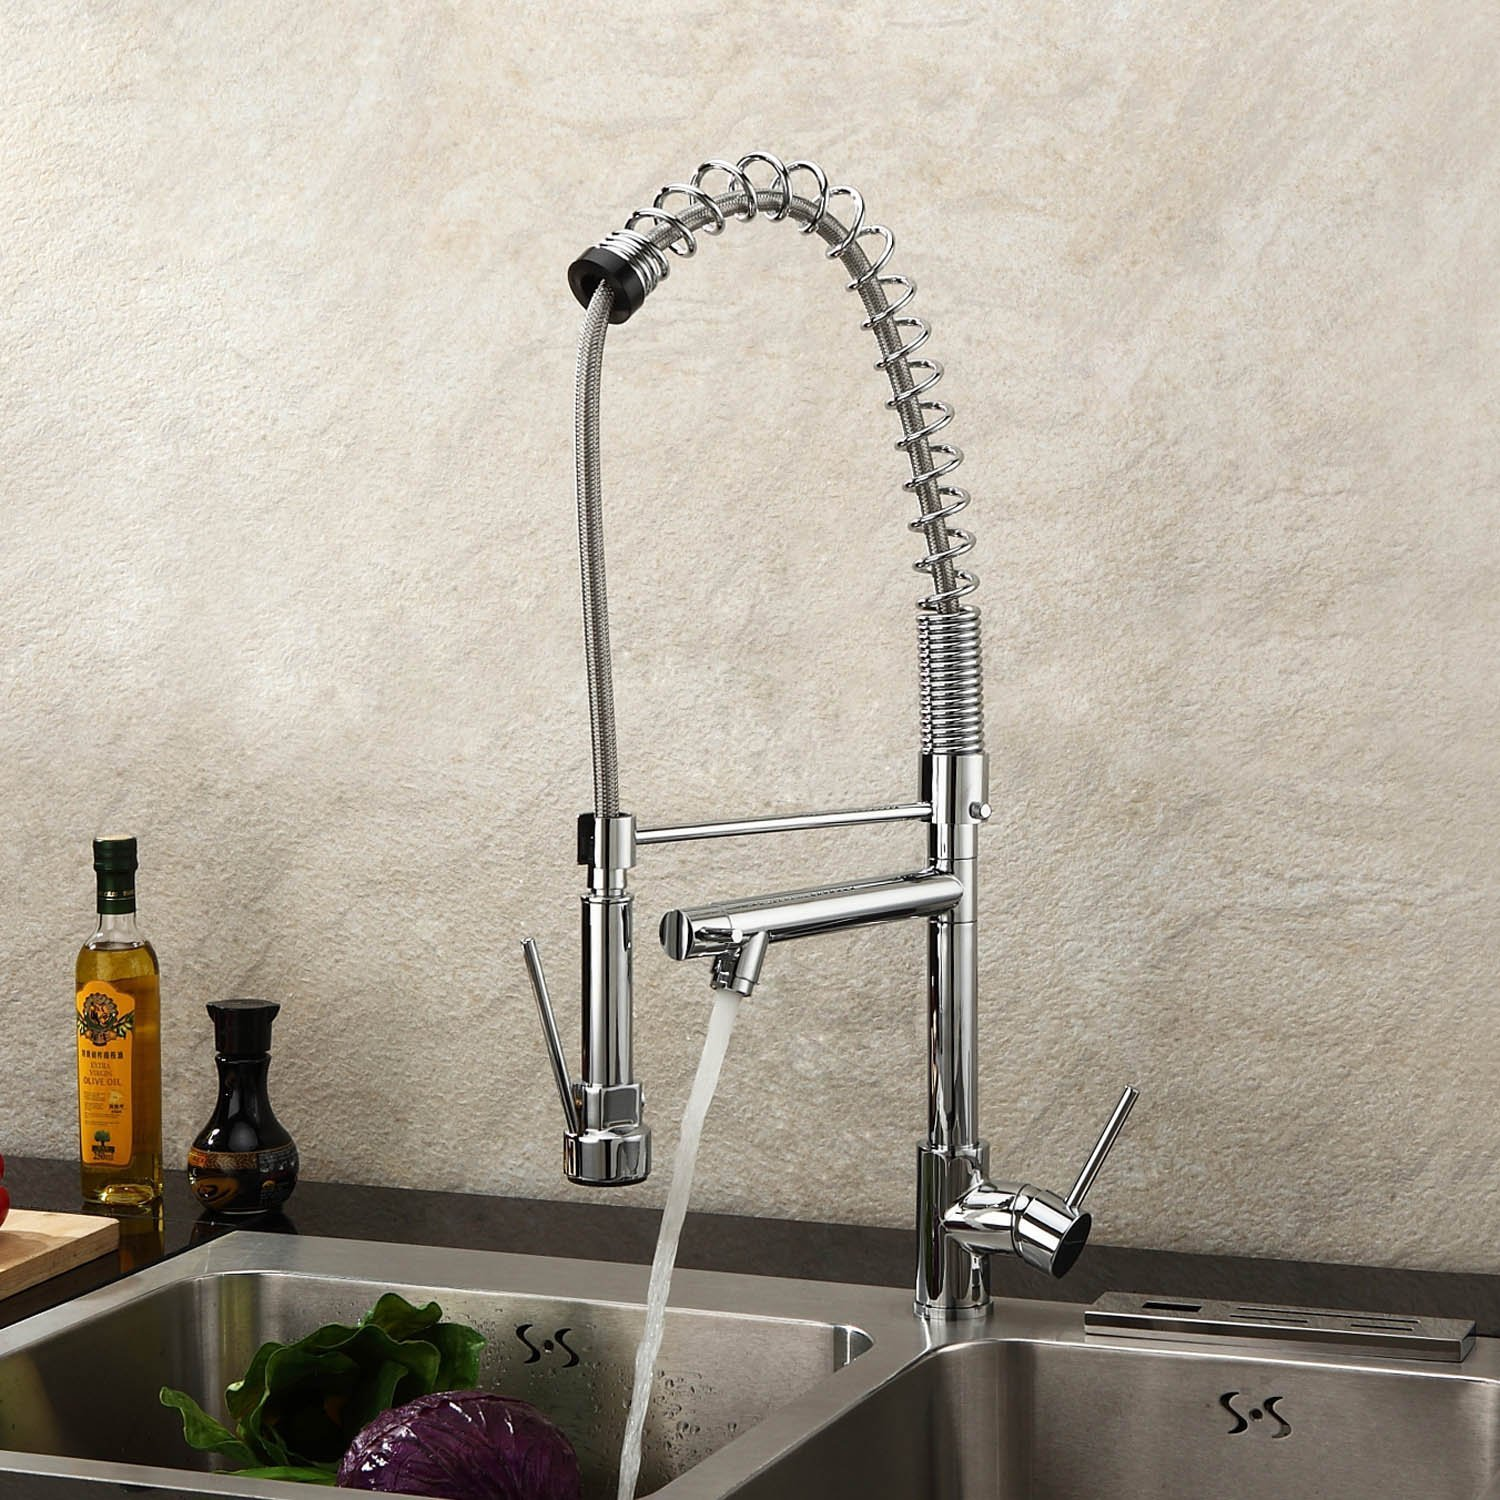 ca lowe delta savile with faucets kitchen canada down soap dispenser steel s handle one stainless faucet pull